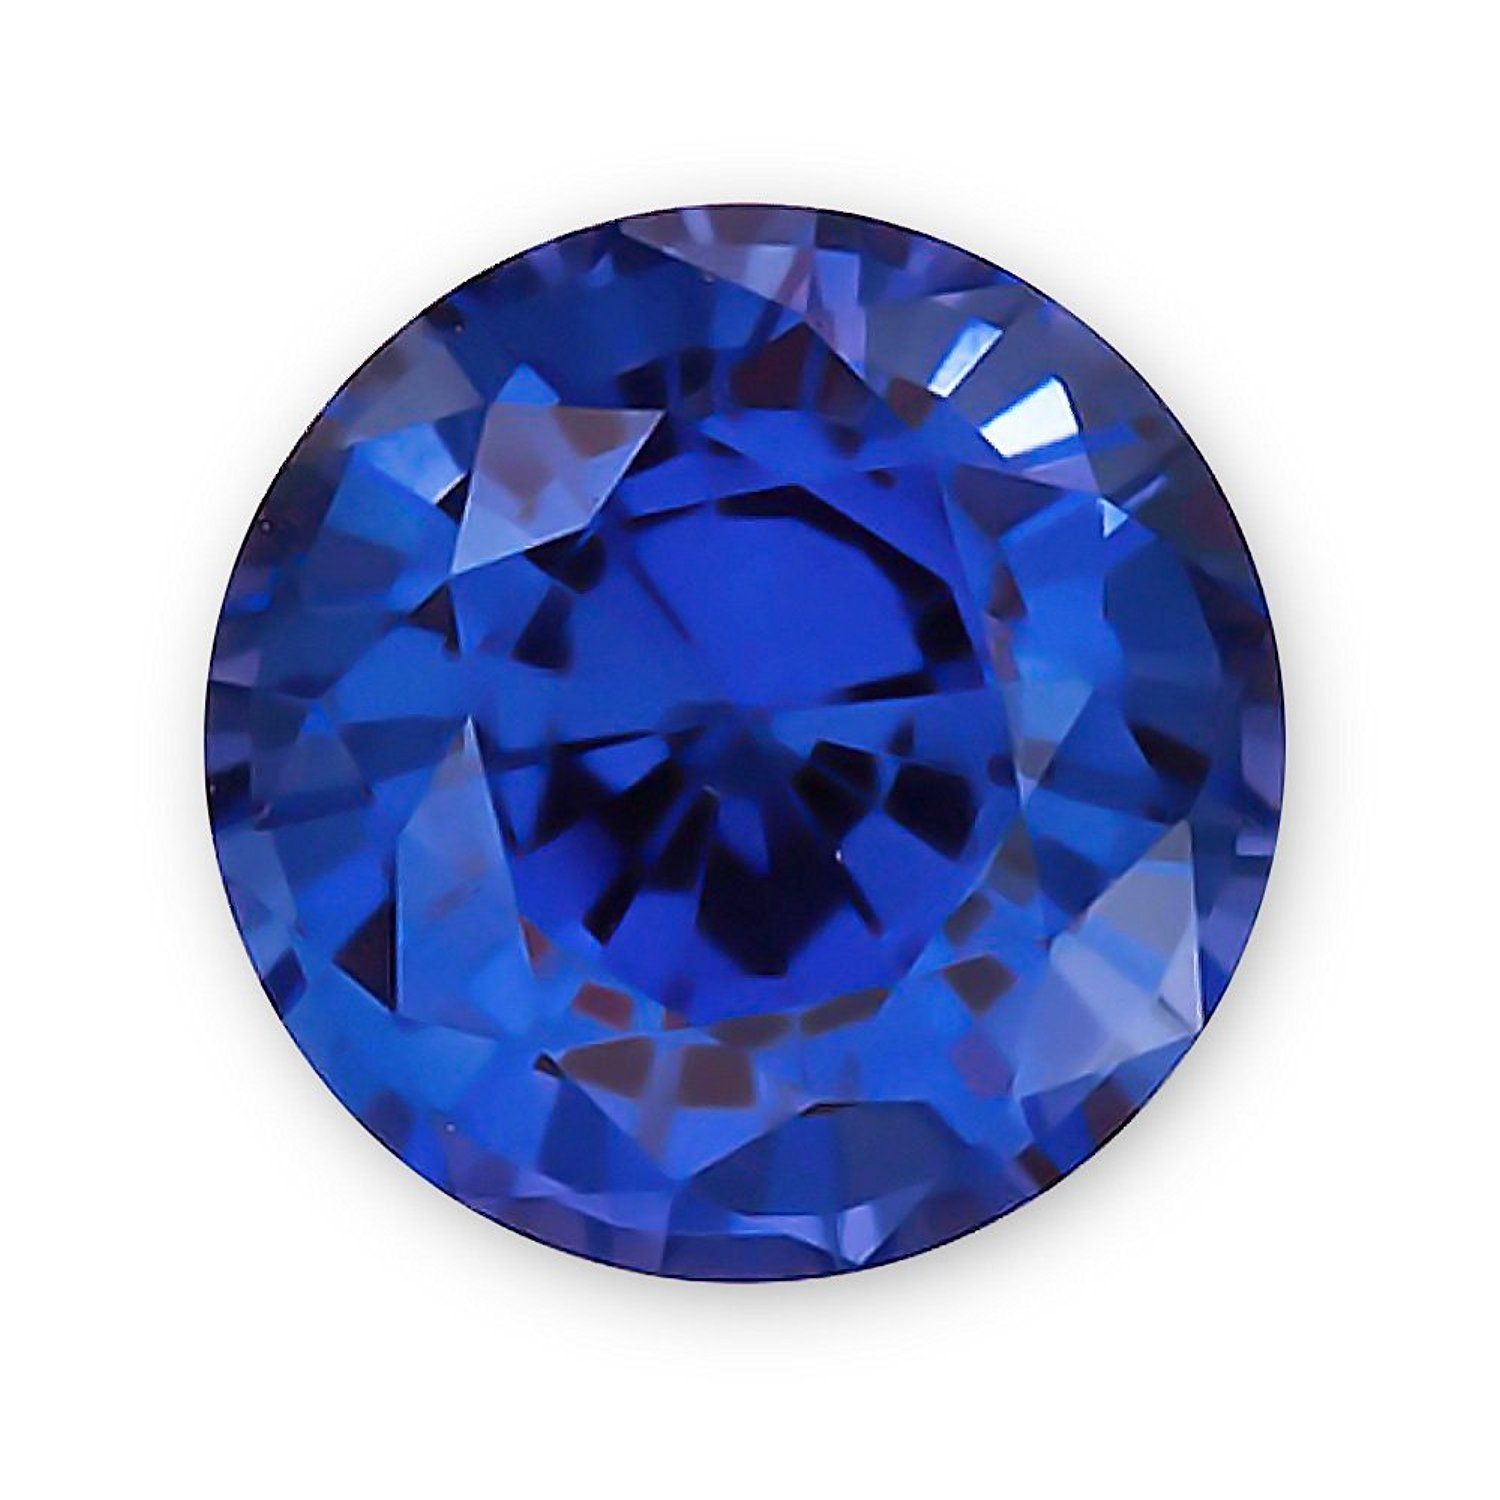 id pune origin in cost nashik srilankan square igl neelam india shaped stone sapphire mumbai and ratti thane certified